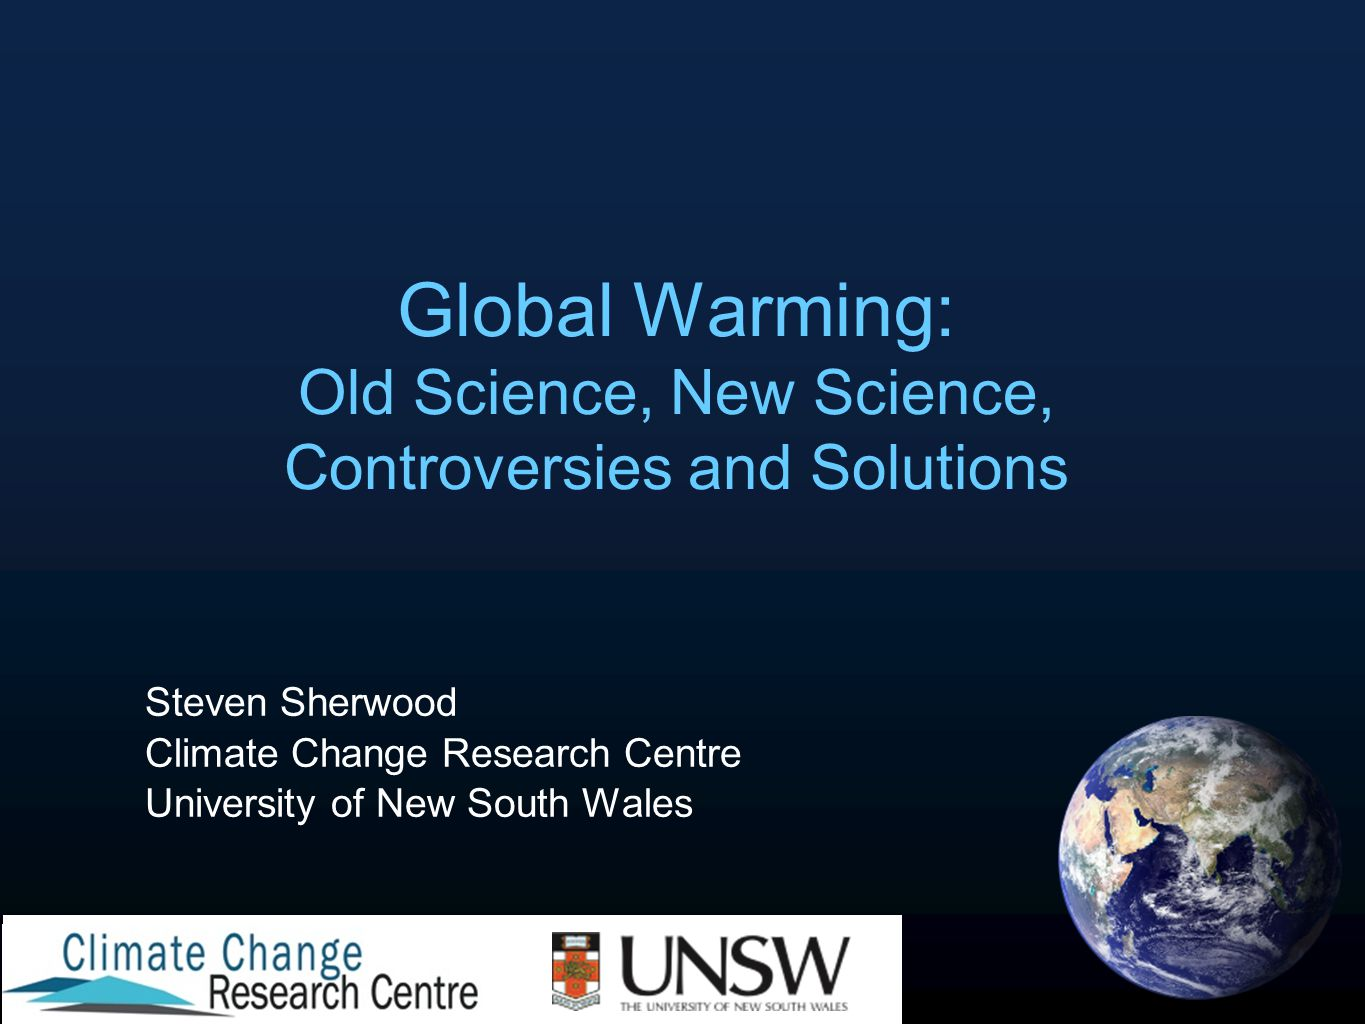 Global Warming: Old Science, New Science, Controversies and Solutions Steven Sherwood Climate Change Research Centre University of New South Wales